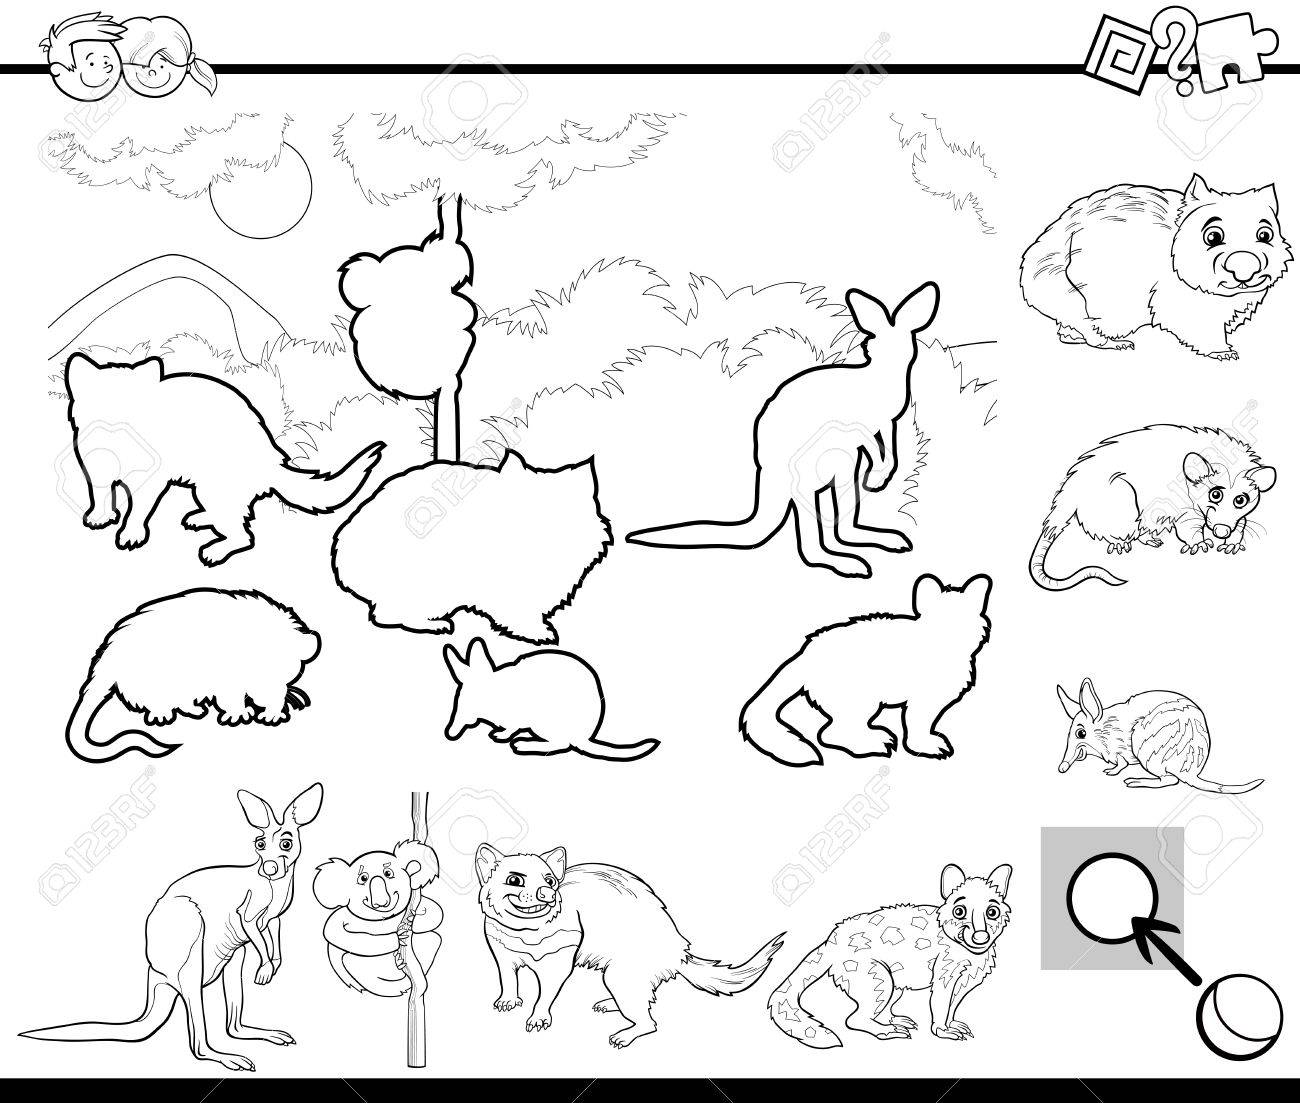 Black And White Cartoon Illustration Of Educational Activity For Preschool Children With Australian Animal Characters